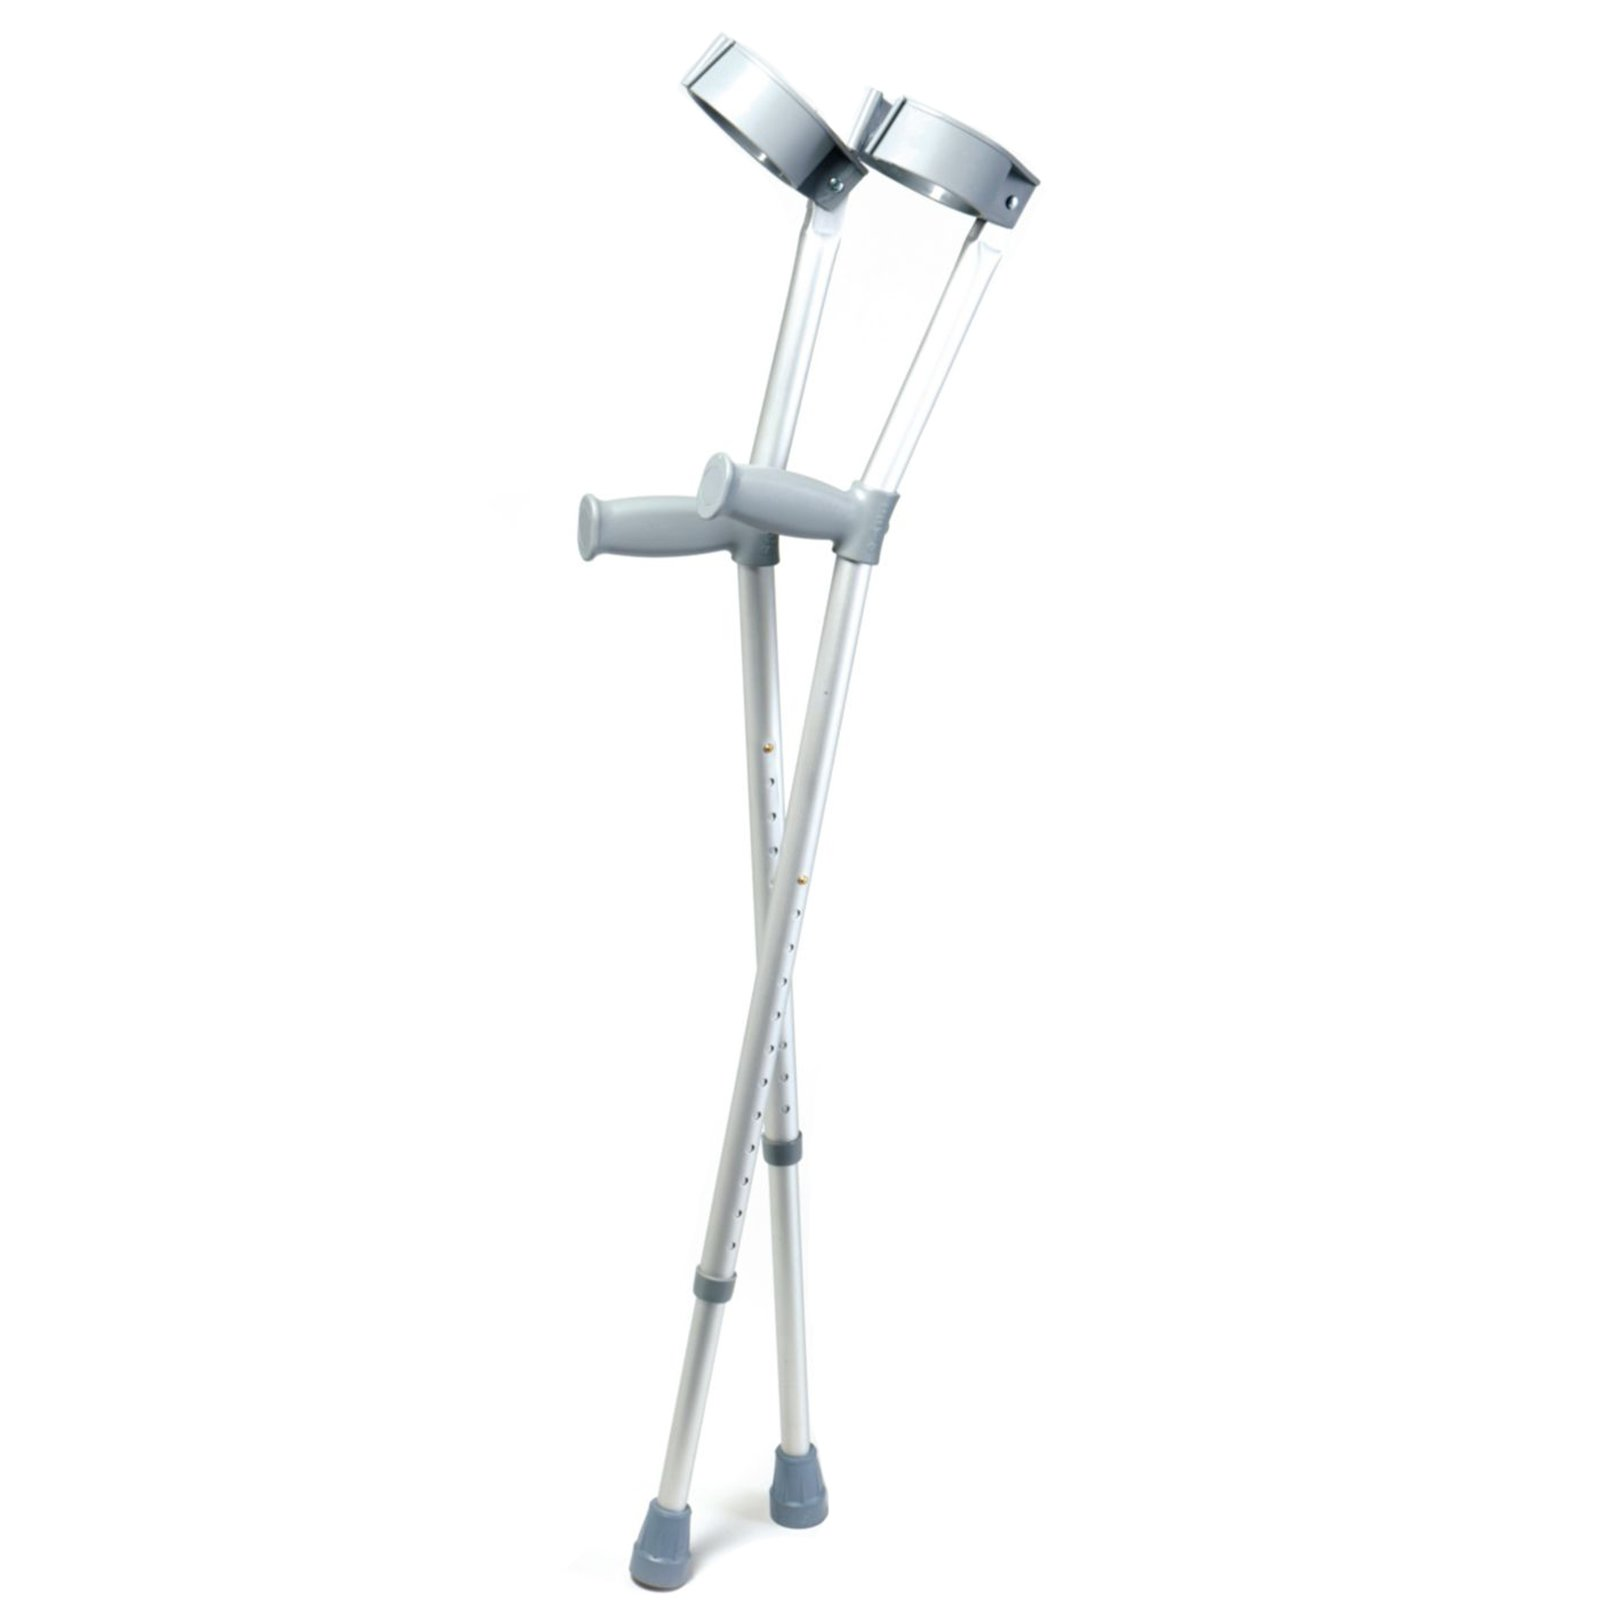 Days Forearm Crutches, Tall Adult Size, Turning Arm Cuffs and Crutches Support Legs After Injury or Surgery, Adjustable Height and Handle Crutches for Elderly, Handicapped, and Disabled Users